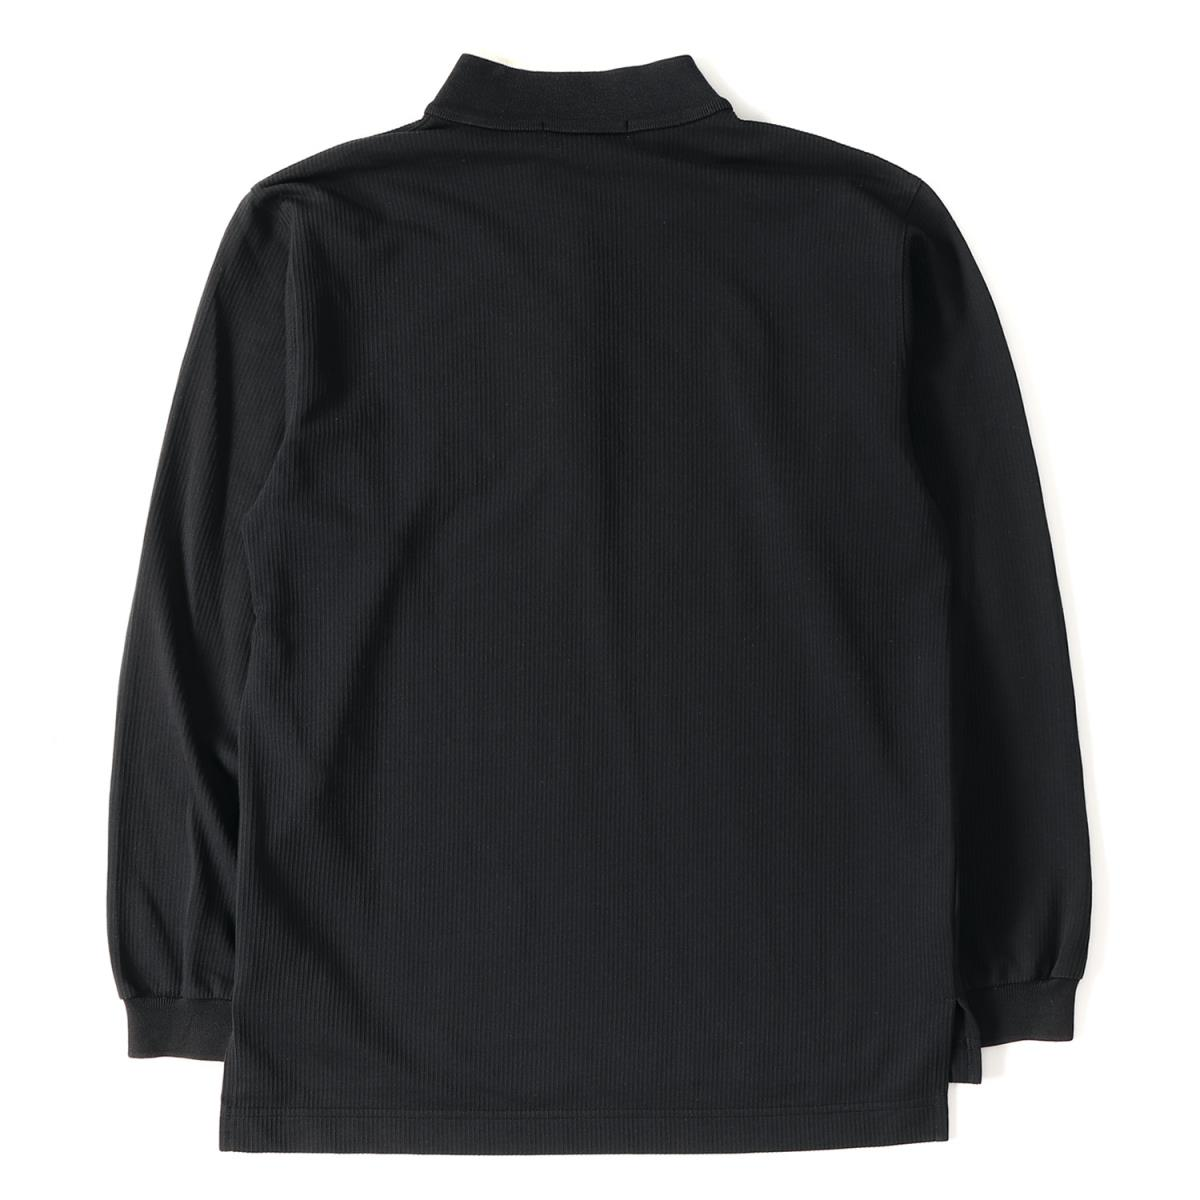 84911d24459 BEEGLE by Boo-Bee  KENZO (Kenzo) logo embroidery T C stand collar long  sleeves polo shirt black 1